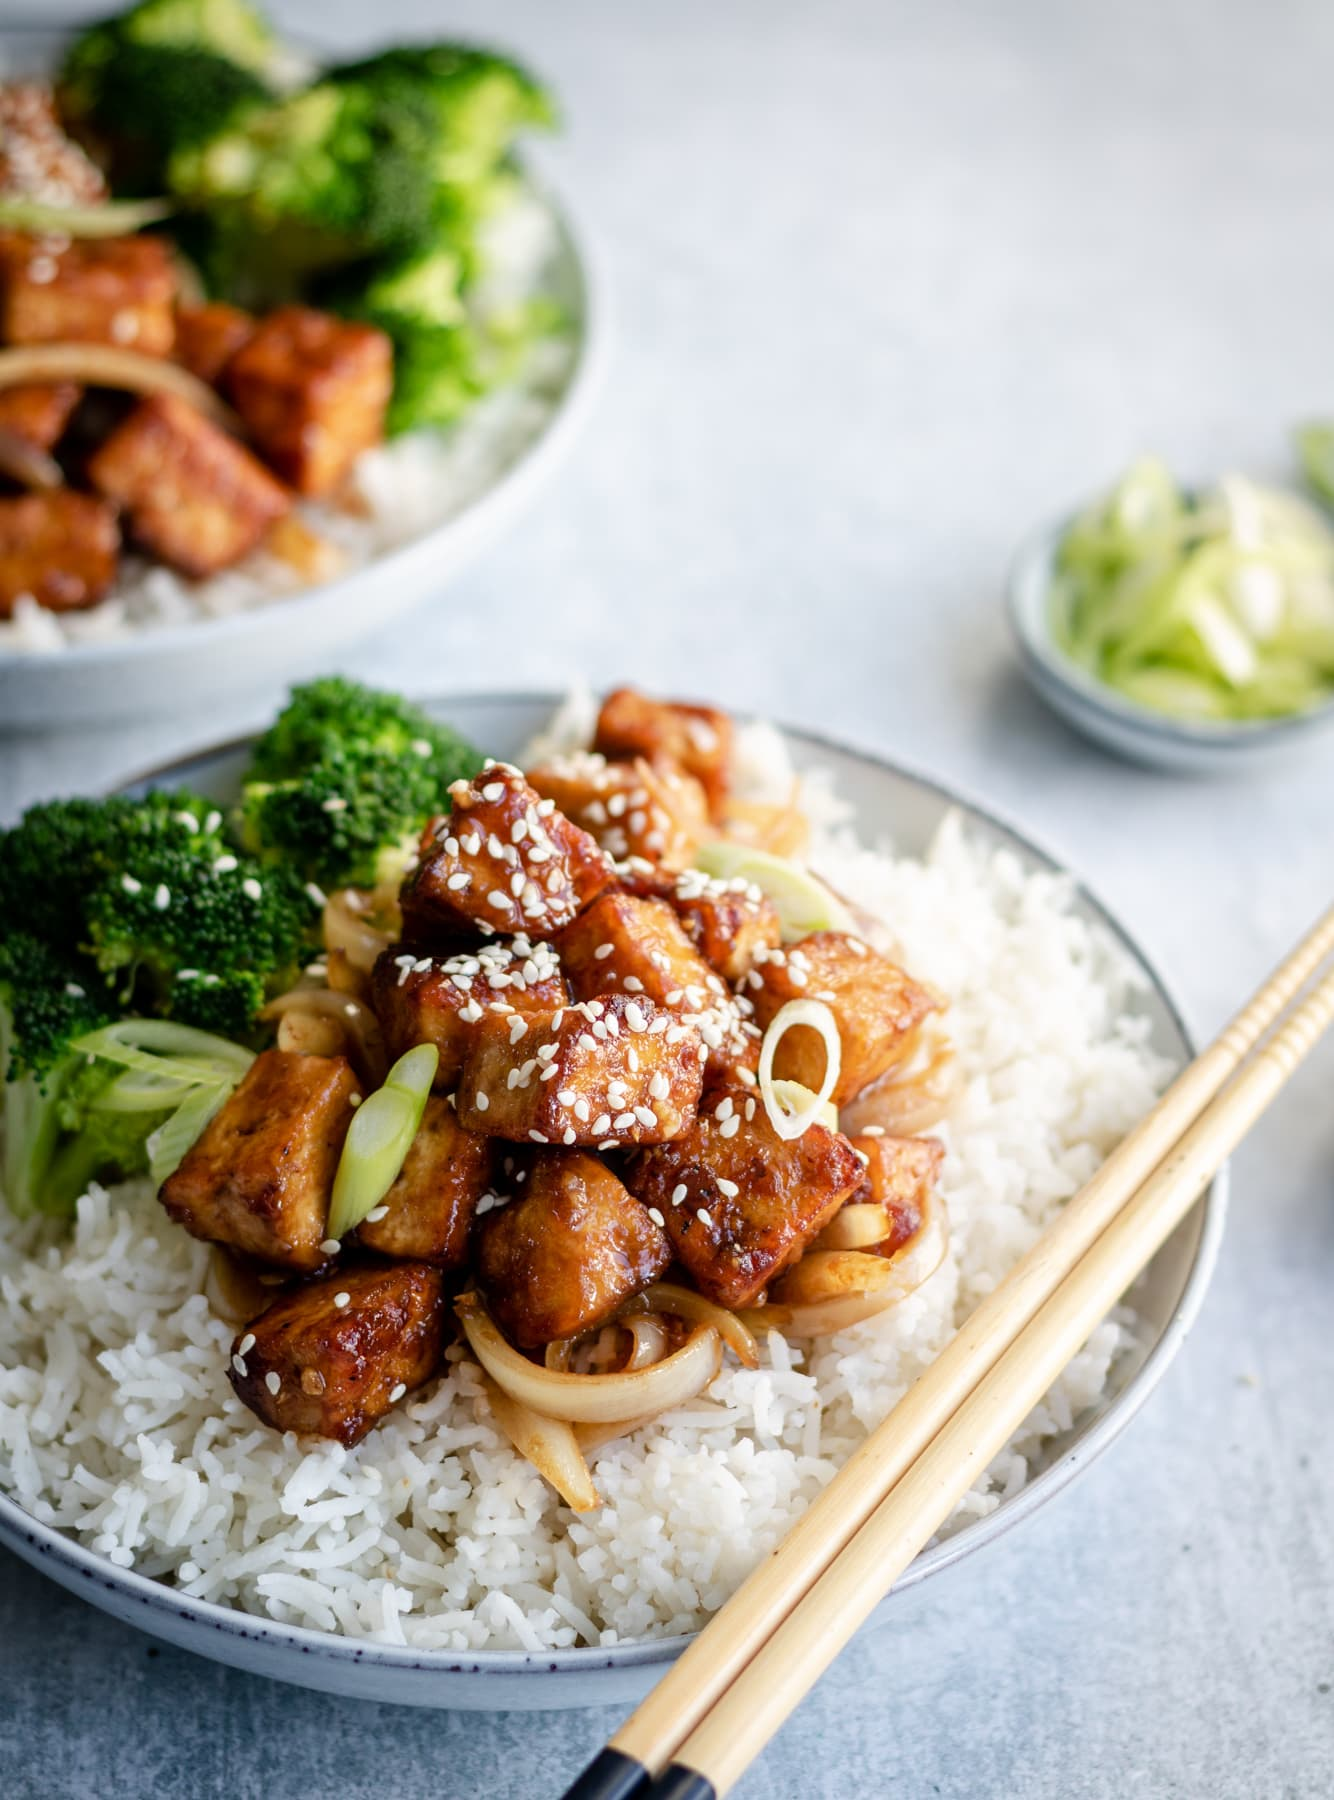 Glazed tofu with sesame seeds, onion garnish, white rice and broccoli